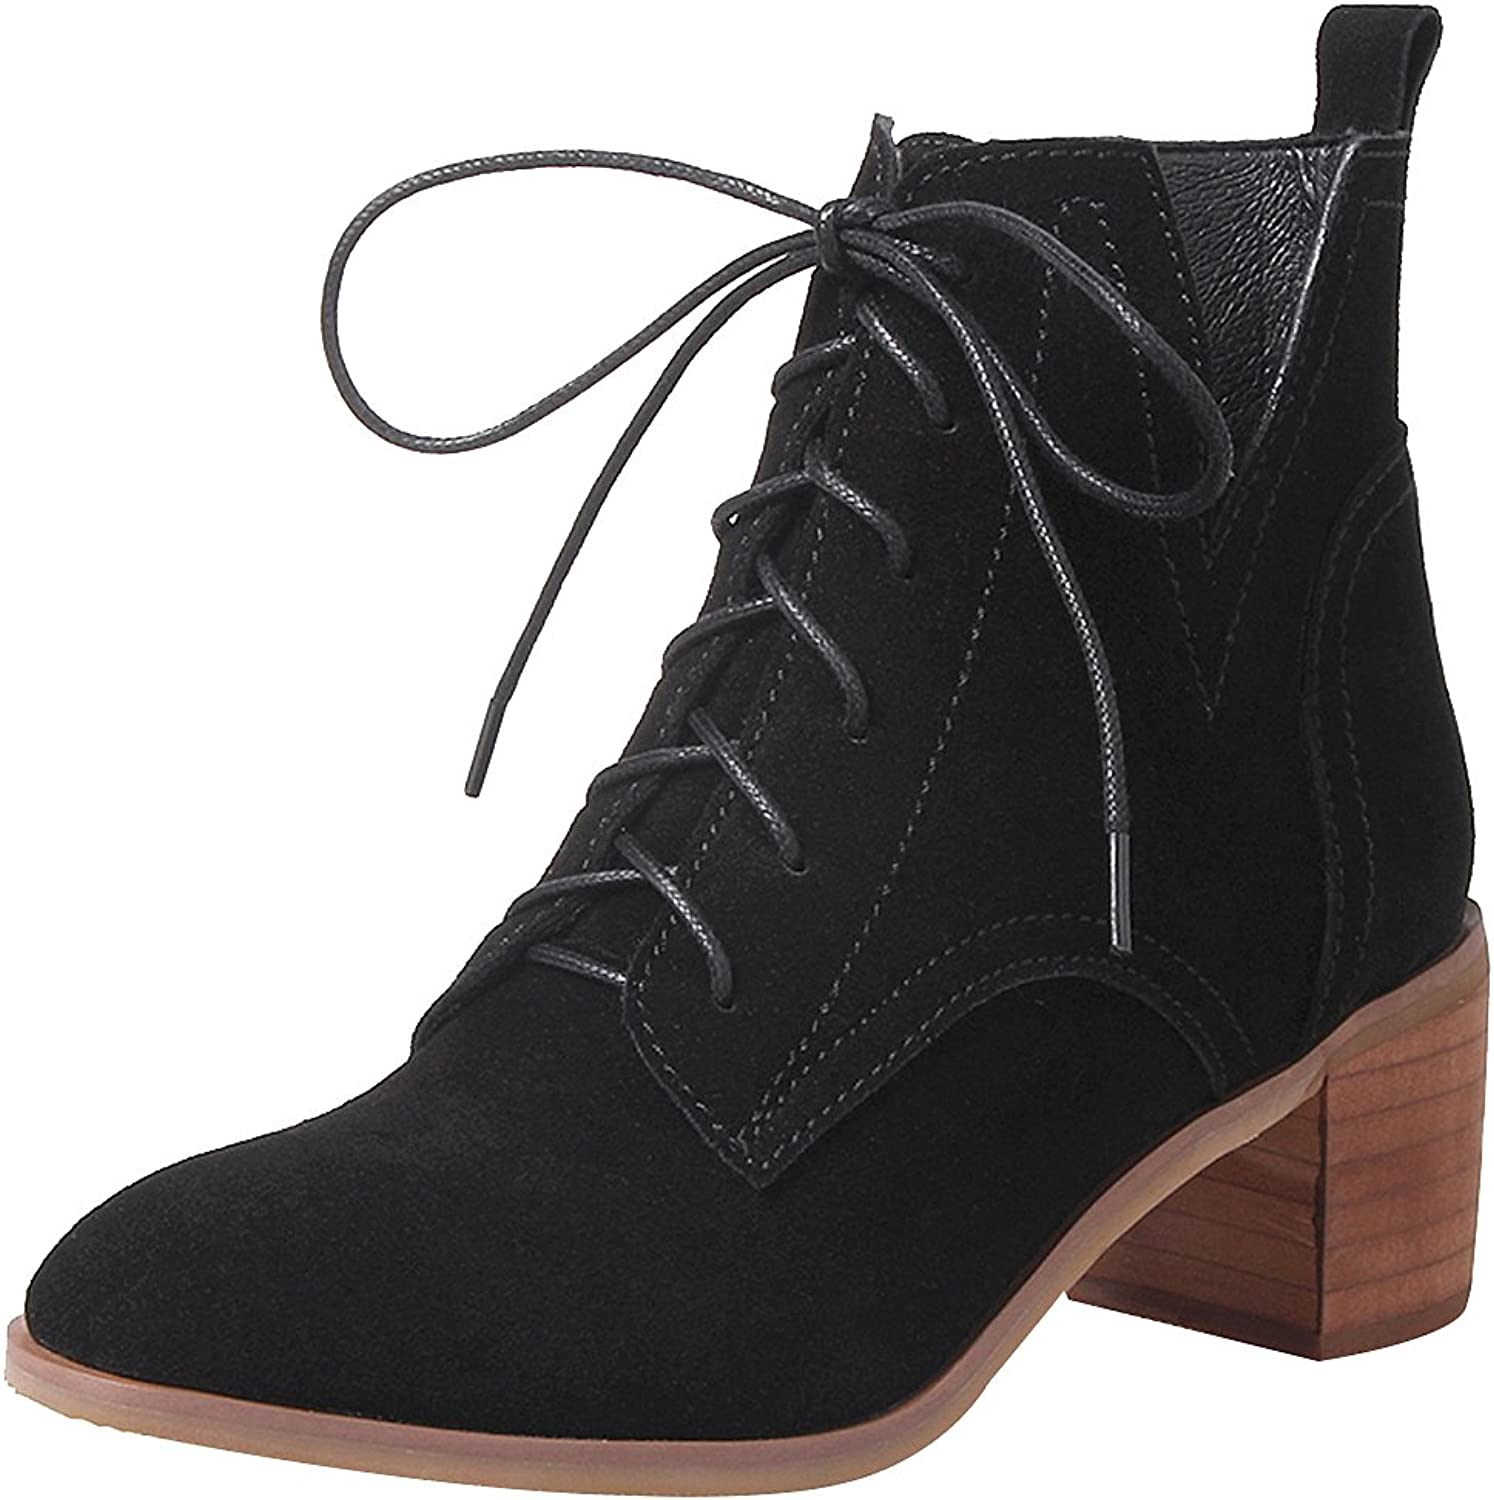 Jamron Women's Upscale Genuine Nubuck Leather Mid Block Heel Ankle Boots Elegant Lace Up Western Derby Boots